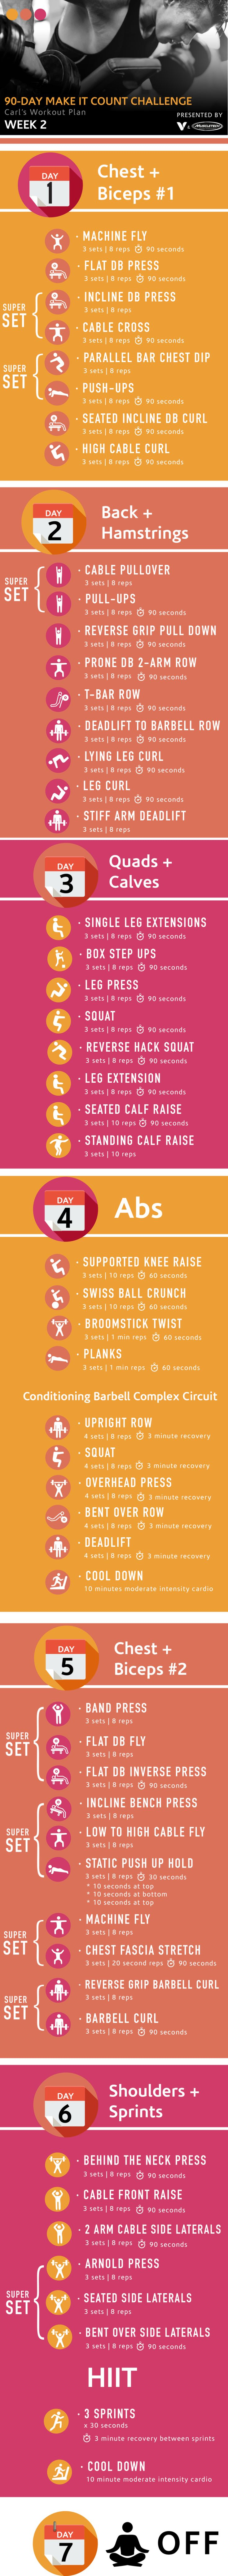 90-Day Make It Count Challenge Workout Plan (Carl)  Goals: Get 'huge' and cut fat